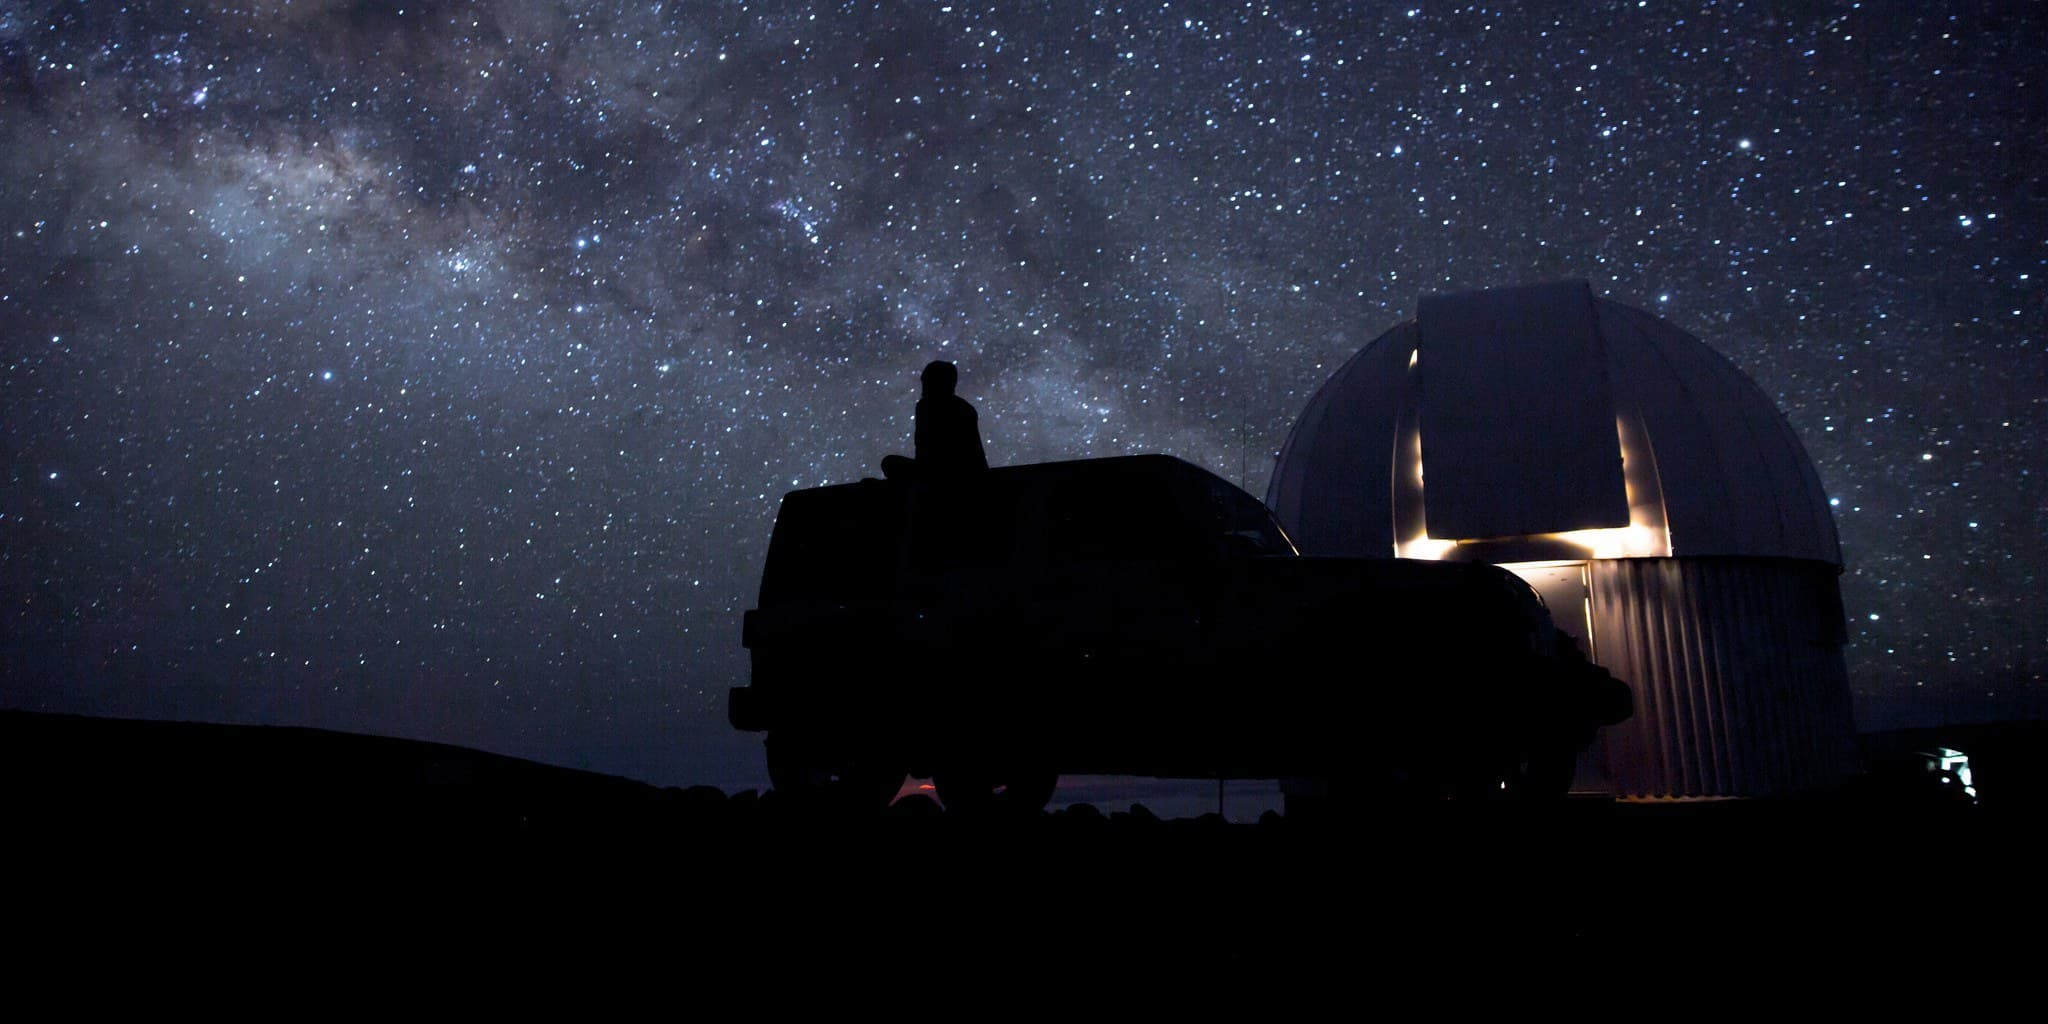 Telescopes for Viewing Deep Space Objects: Nebulae, Star Clusters, and Galaxies